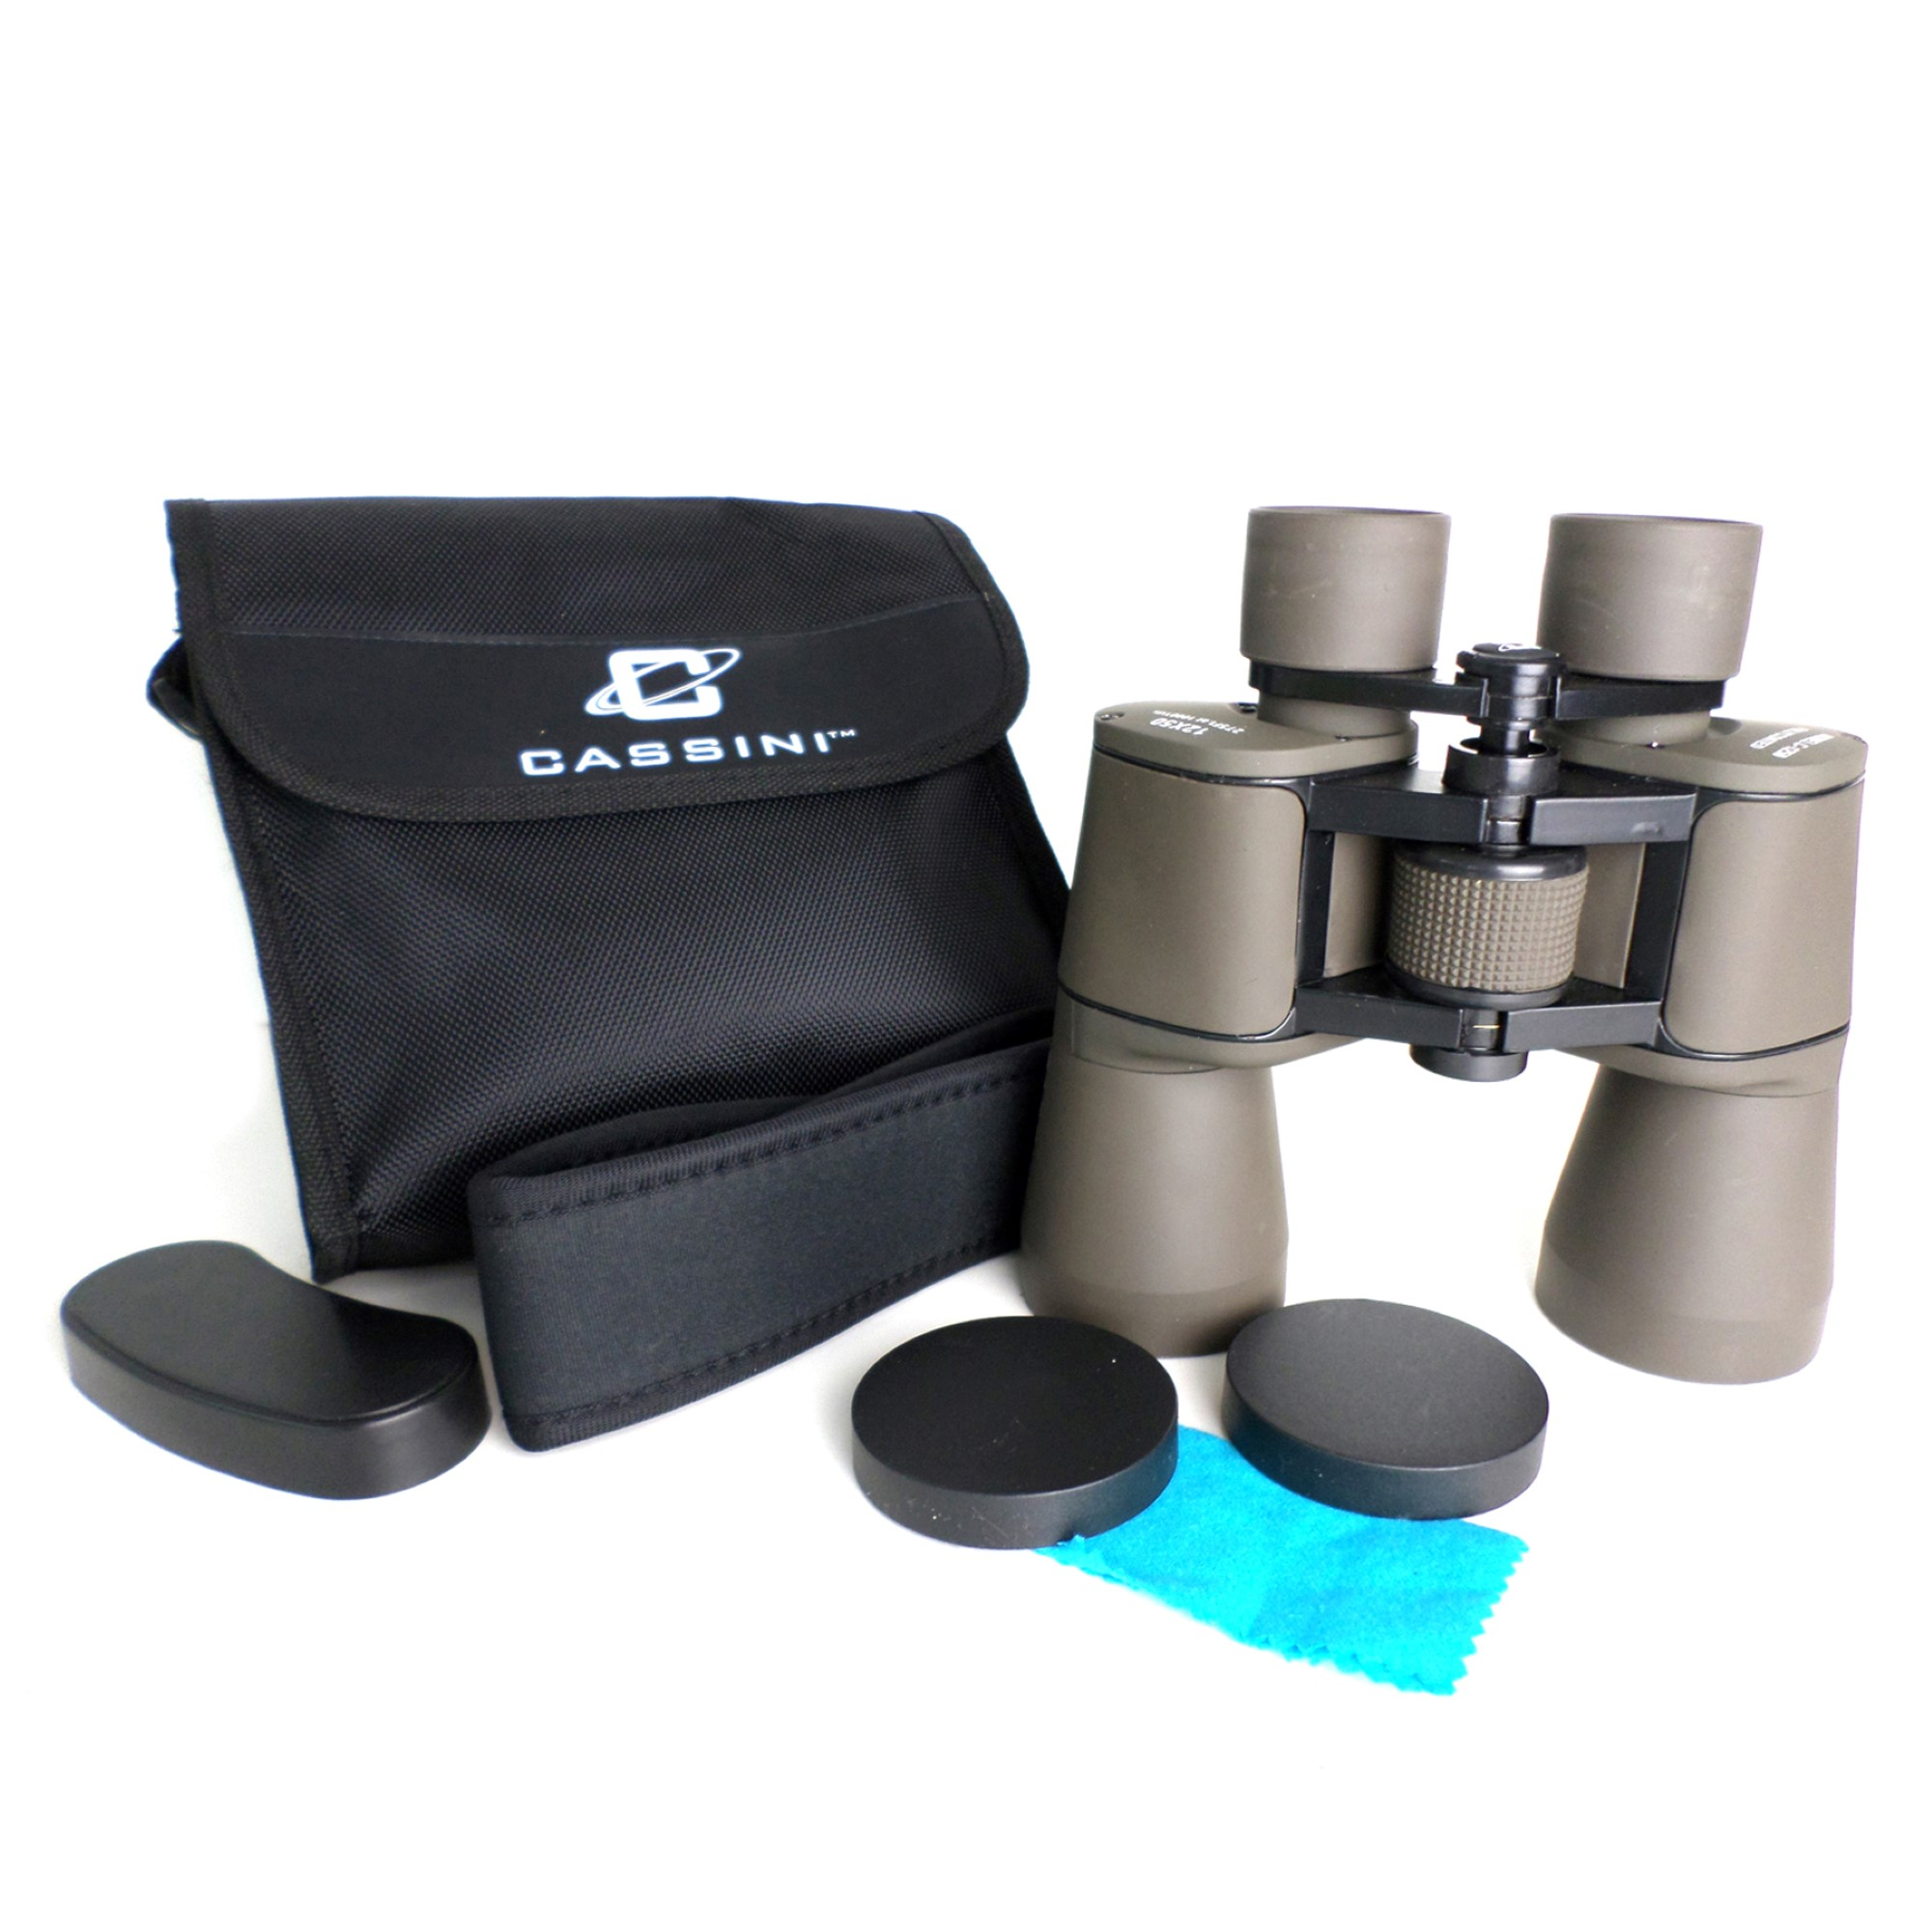 Cassini 12 x 50mm Day and Night Binocular brings images 12 x closer with large 50mm Objective lens for bright and wide views. Tripod Port and Shoulder Case